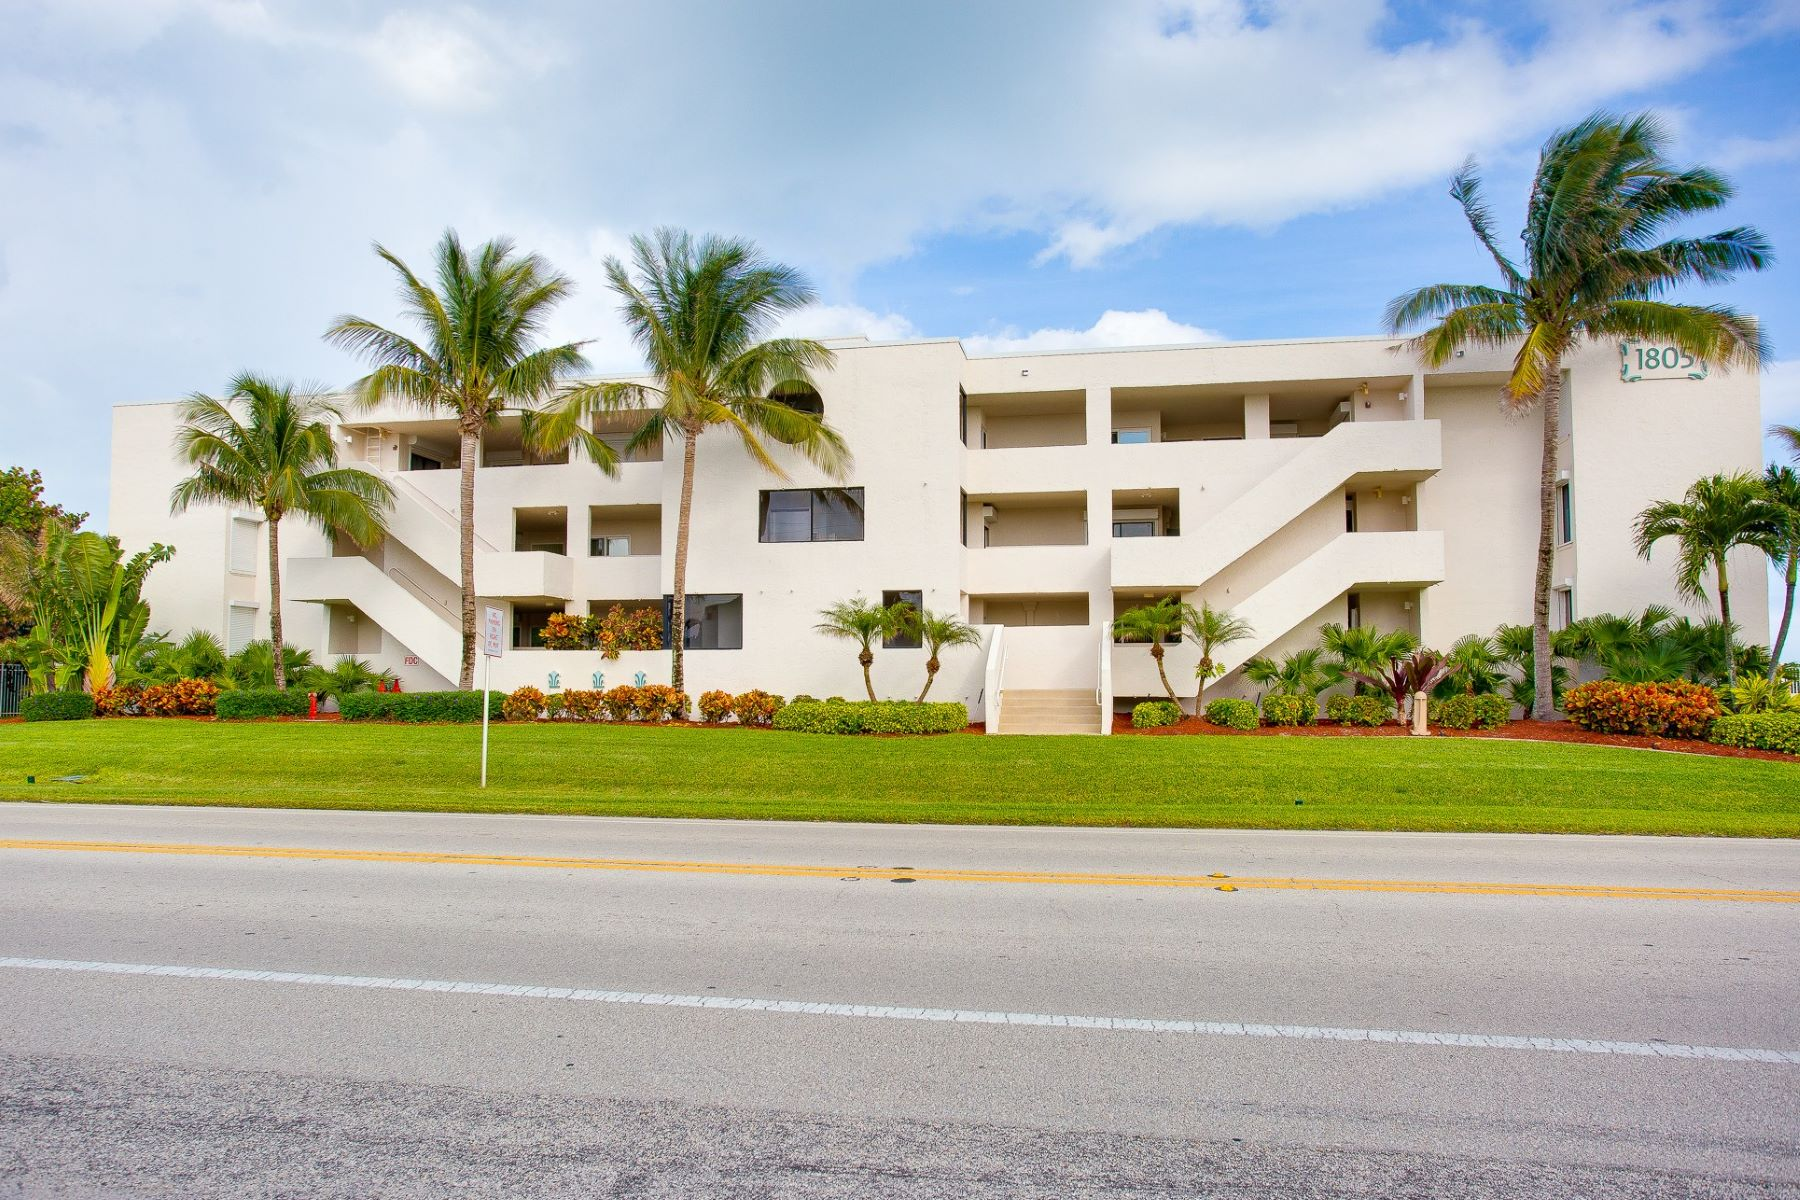 Condominiums for Sale at Totally Updated Oceanfront Condo 1805 Atlantic Street 122 Melbourne Beach, Florida 32951 United States